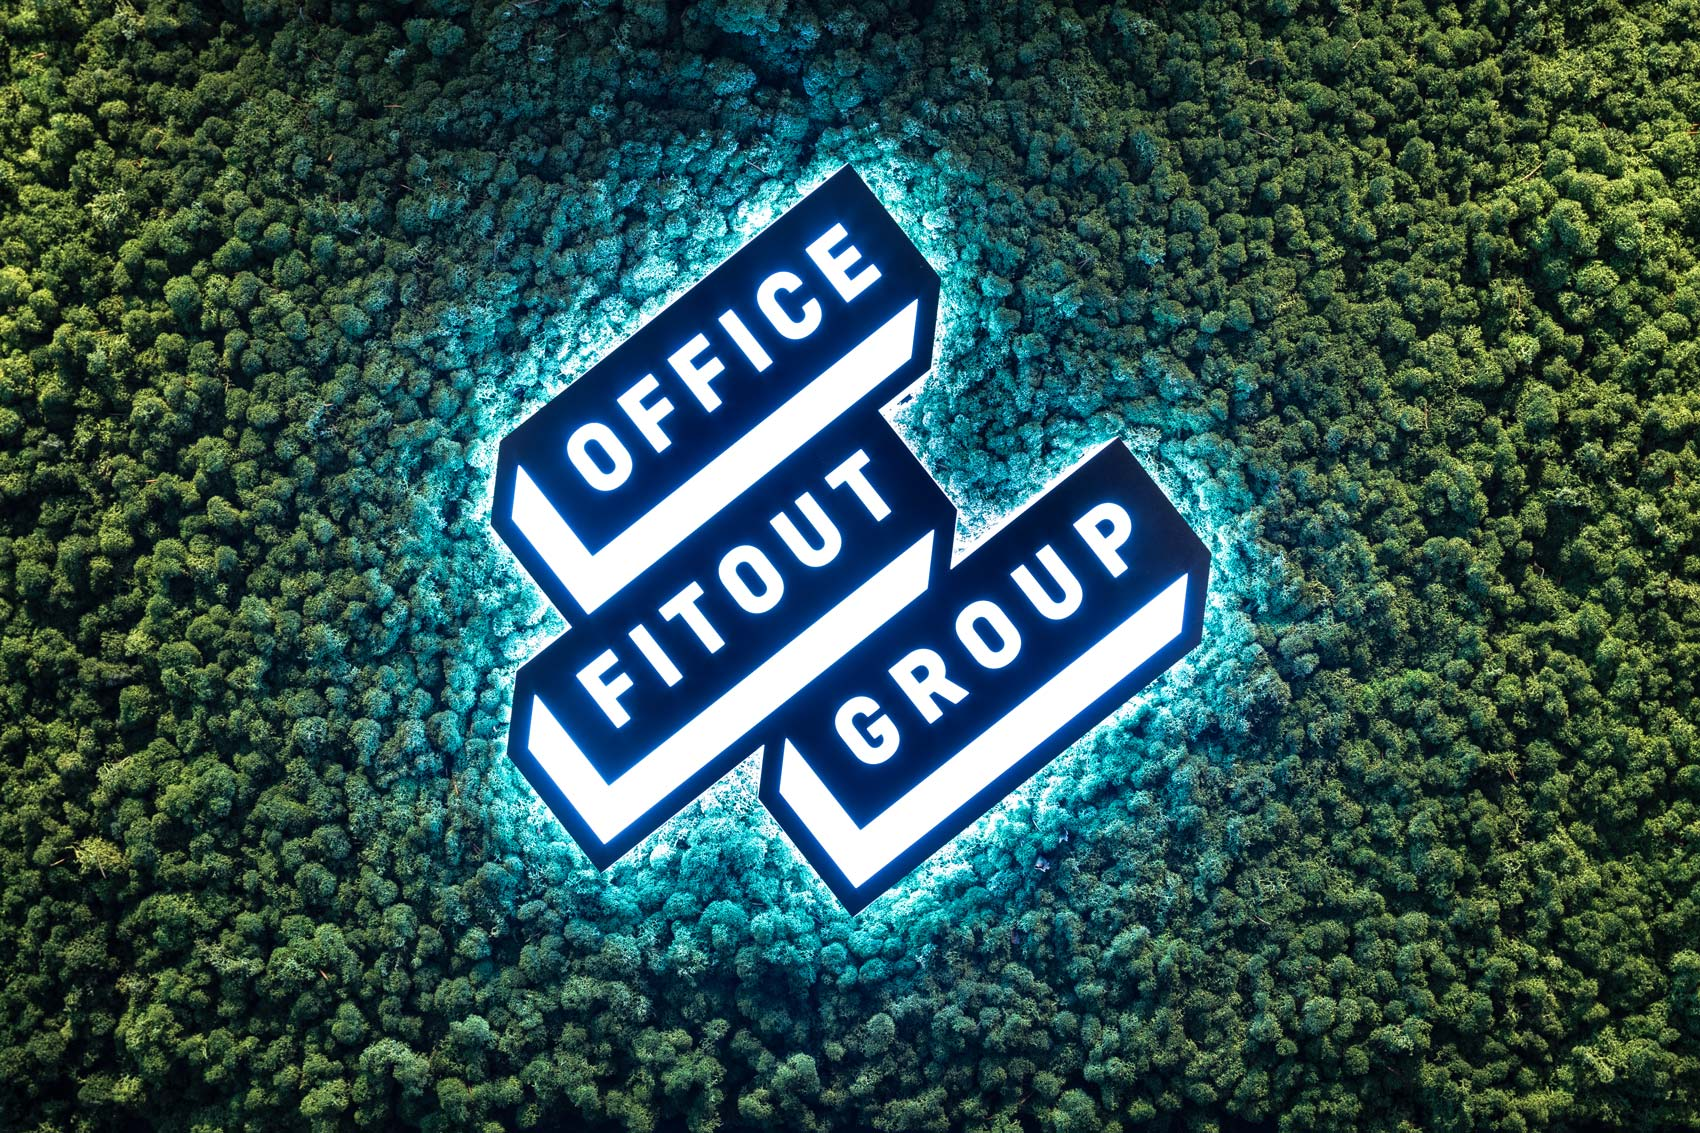 Office Fitout Group graphic communication web design Vibranding branding corporate identity logo